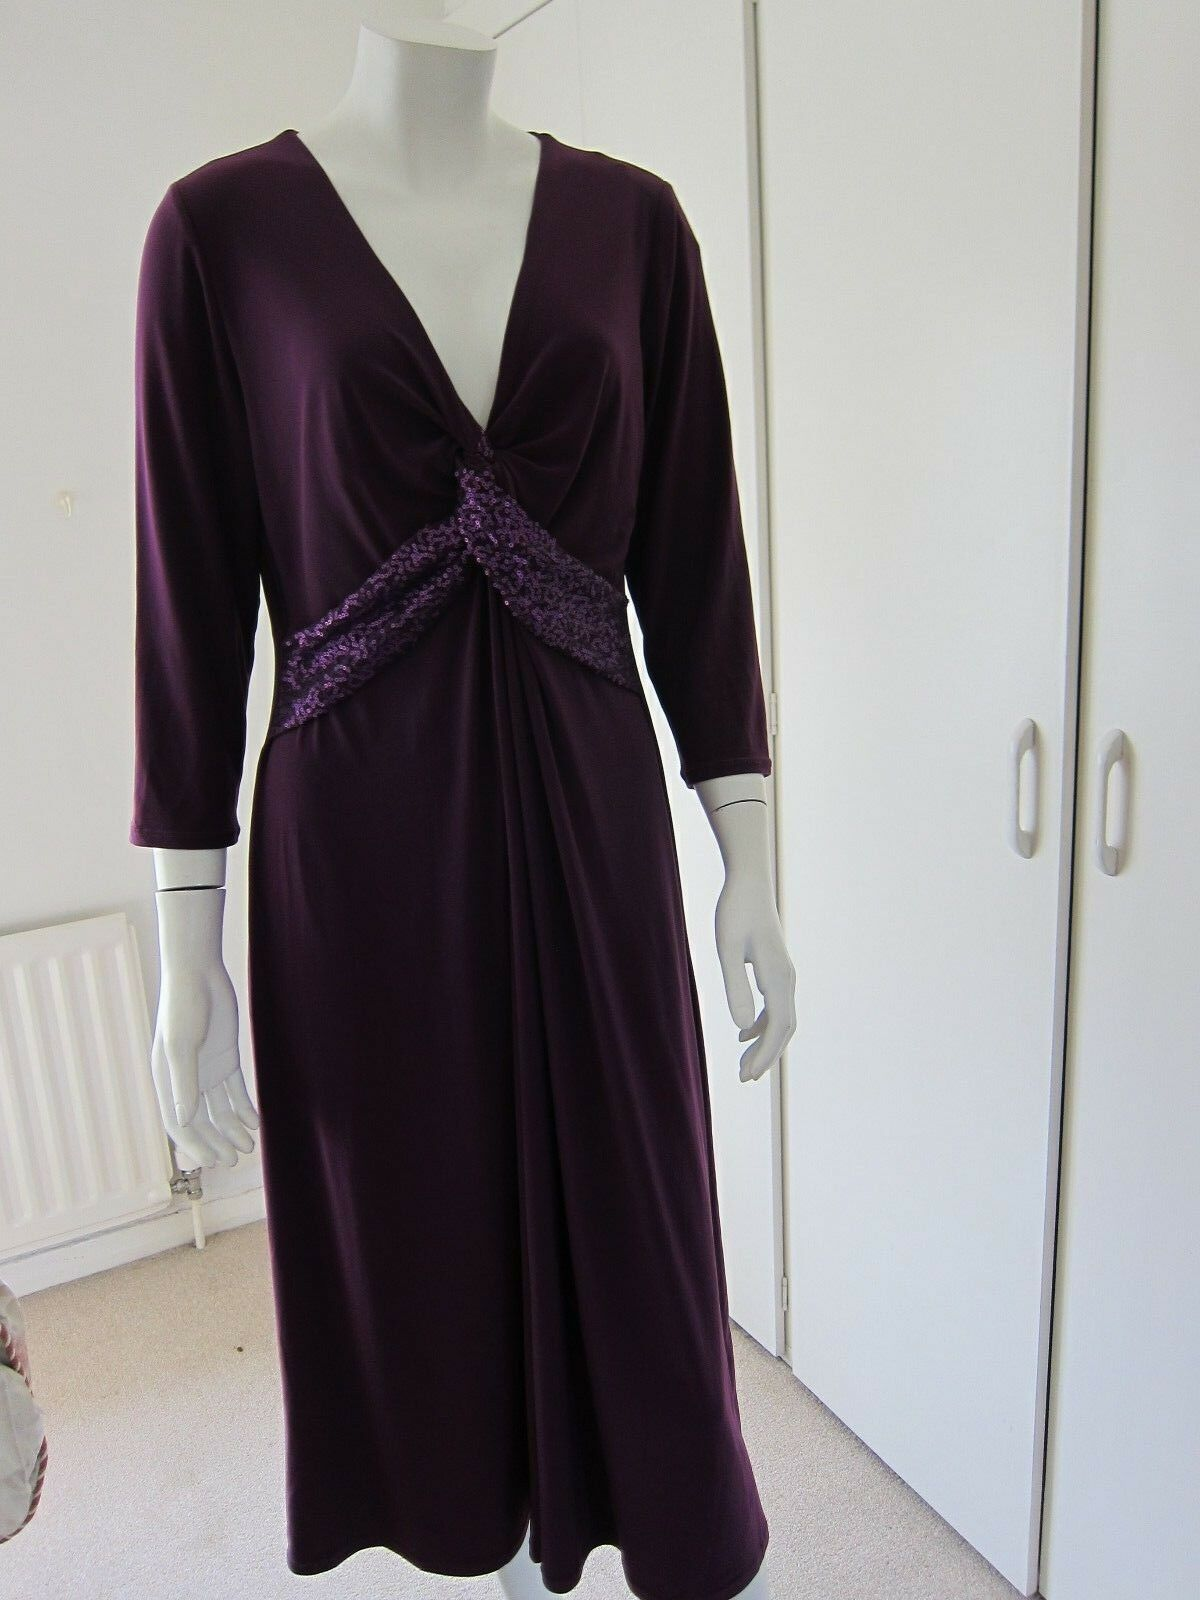 Windsmoor burgundy formal party midi length dress with sequins Größe 16 RRP